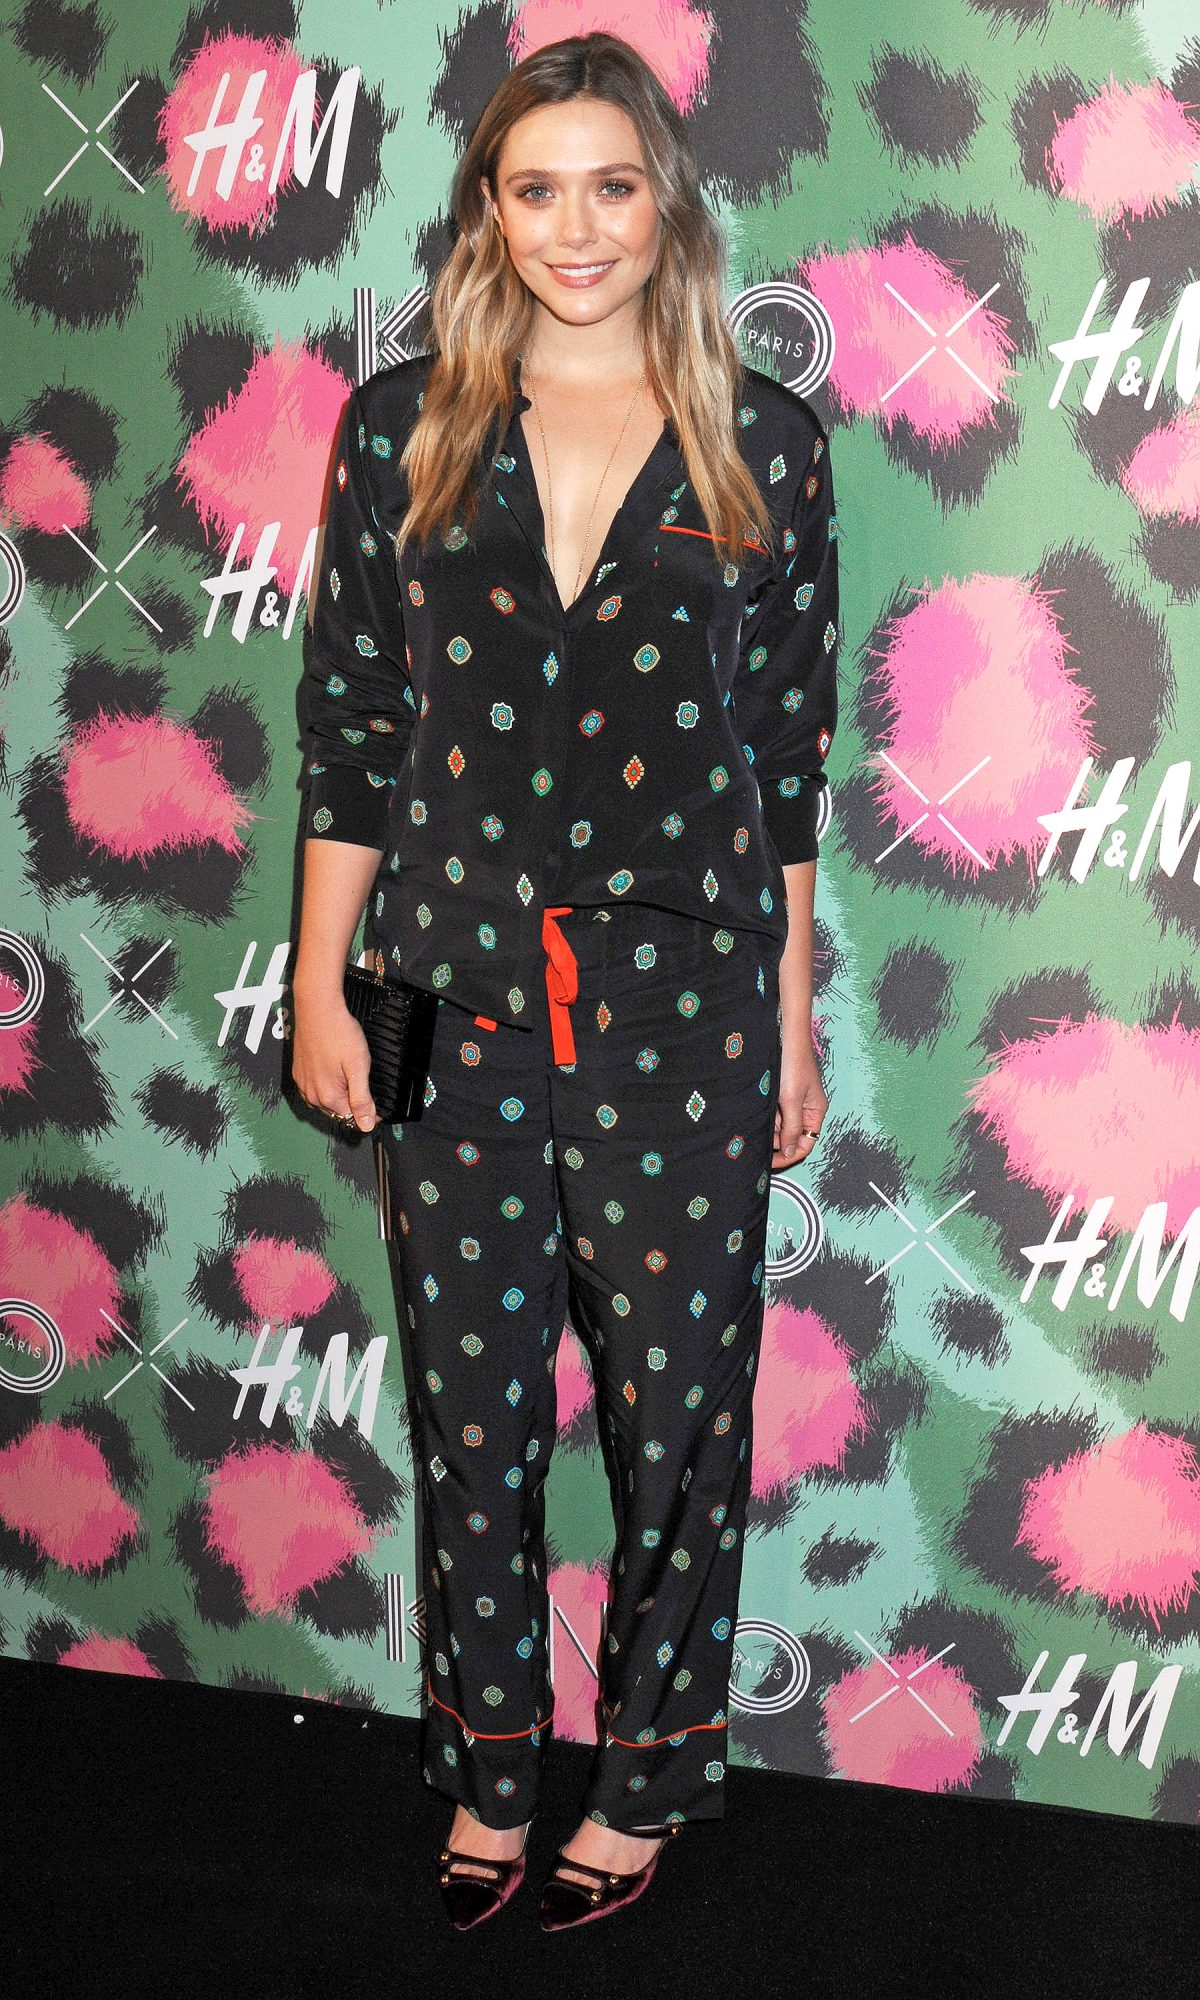 Arrivals at the KENZO x H&M Collection Launch Event in NYC